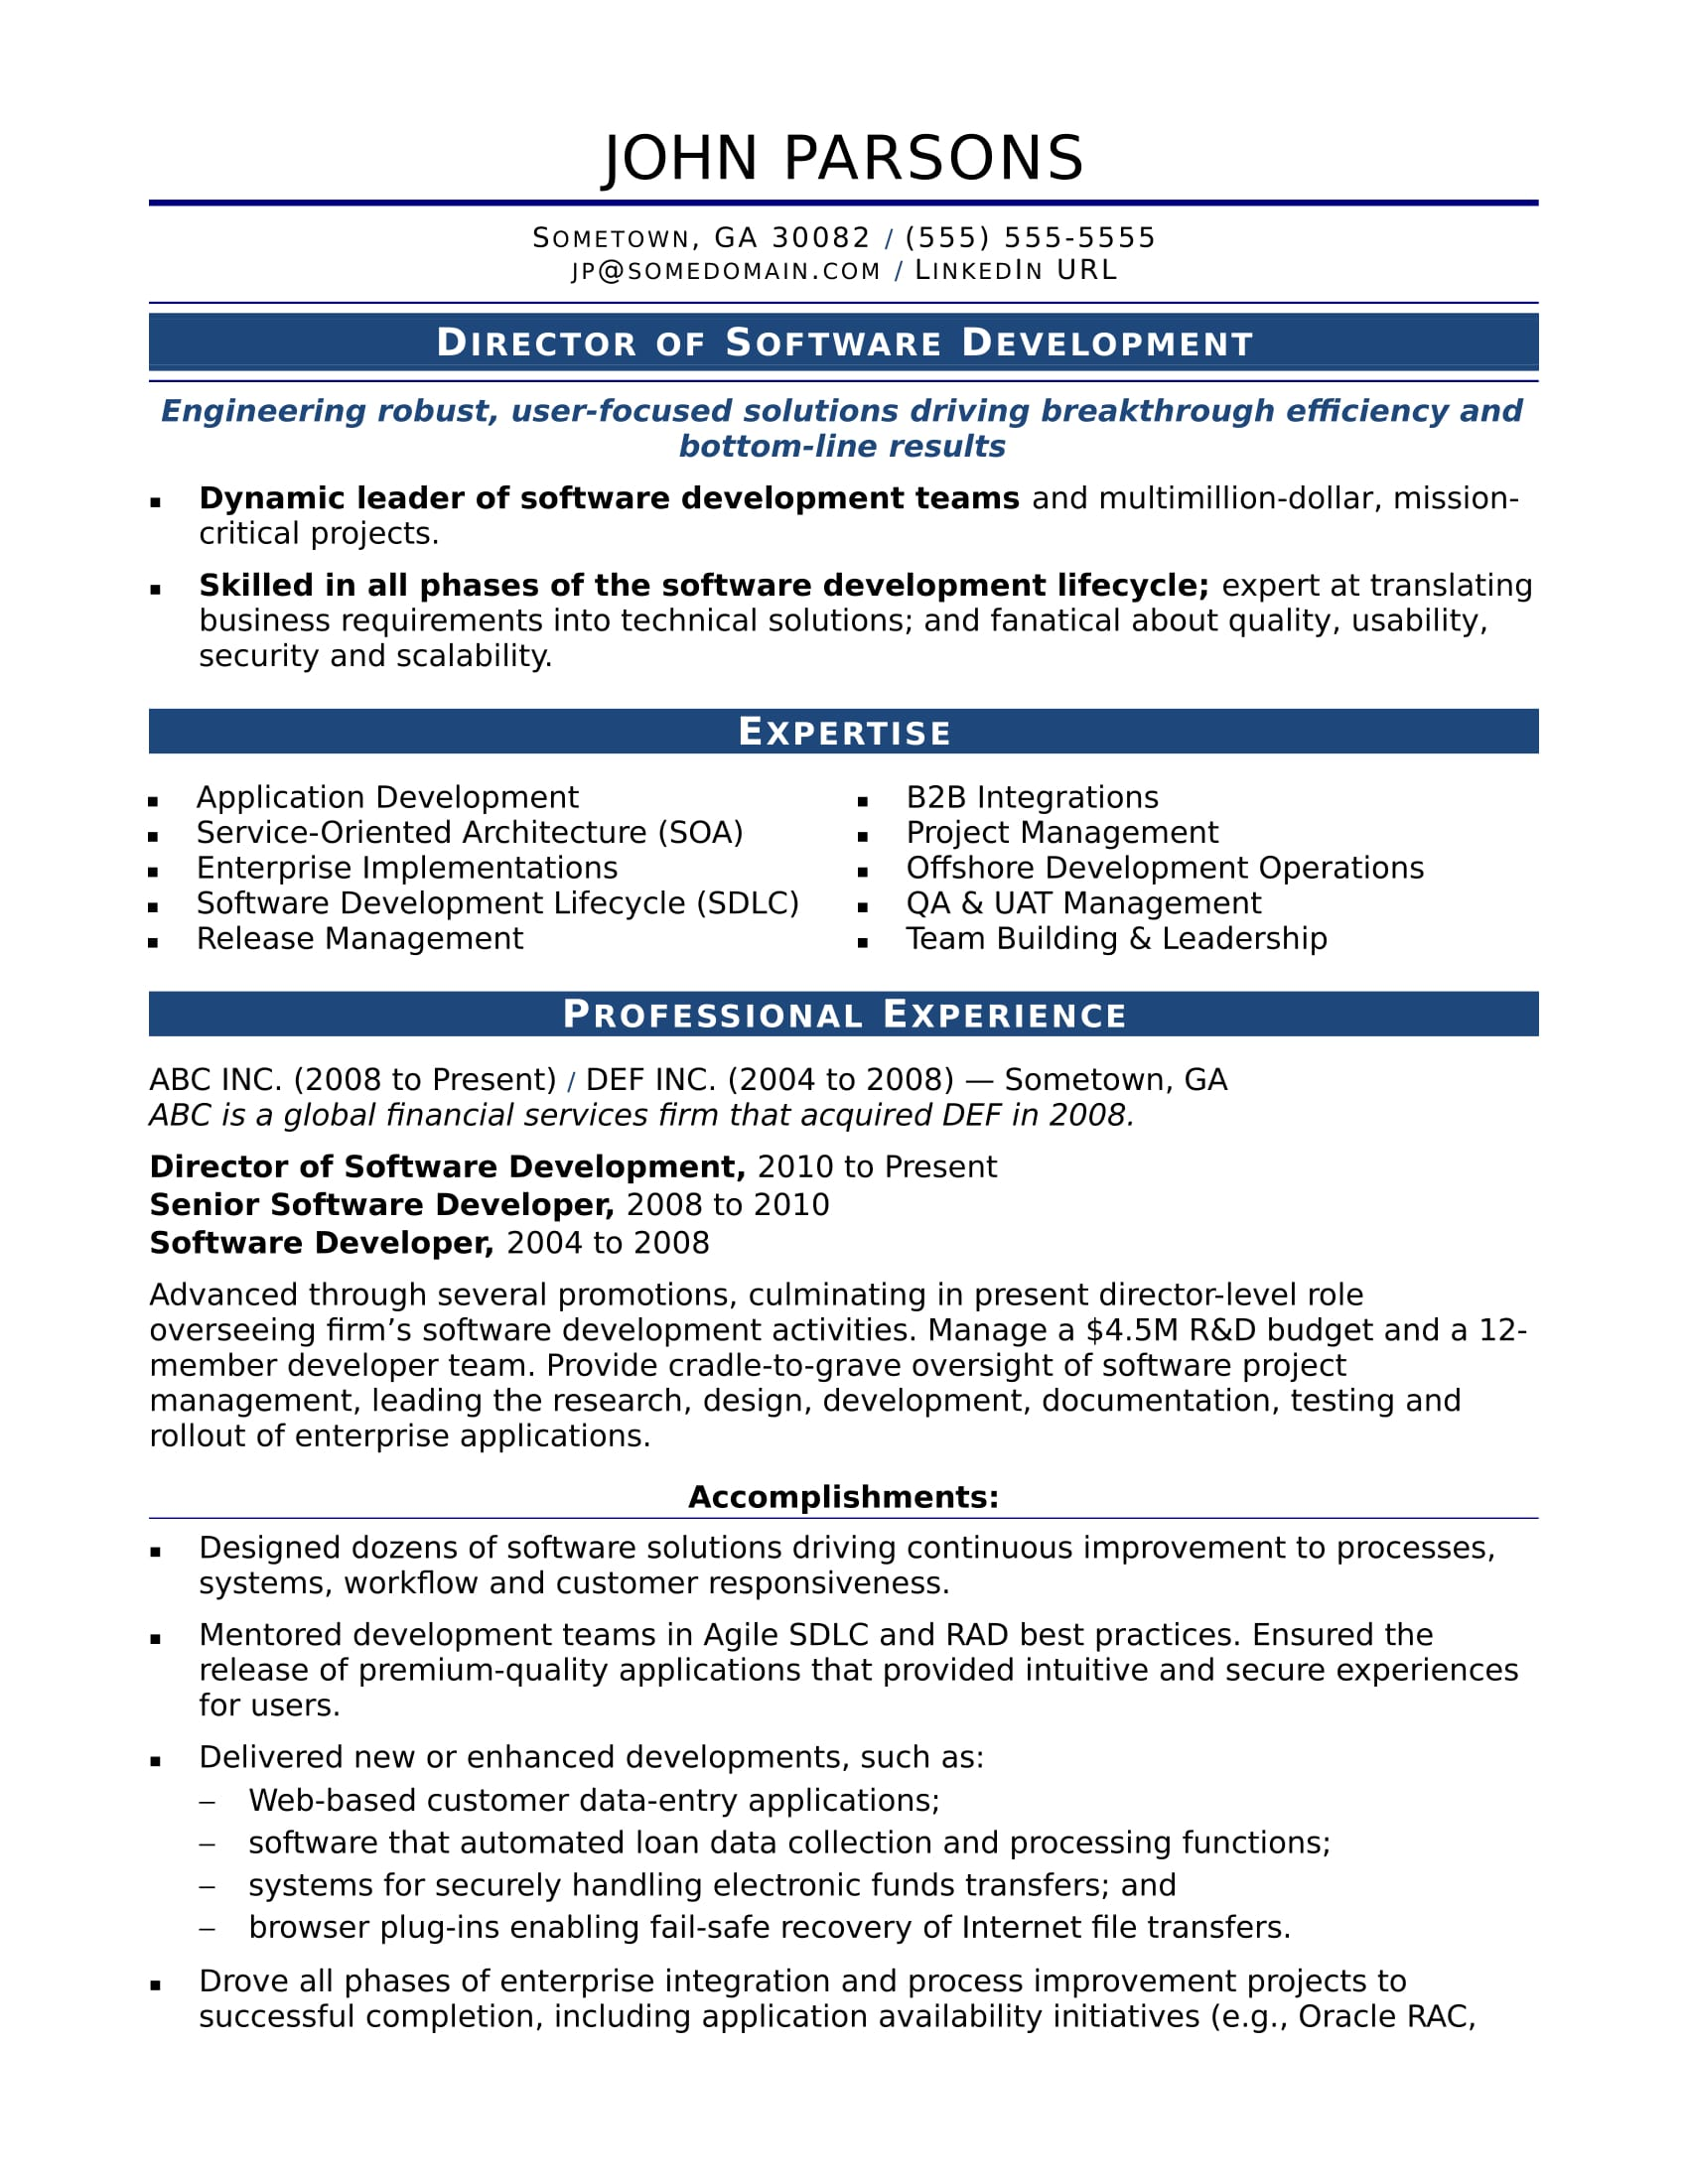 Charming Sample Resume For An Experienced IT Developer With Senior Developer Resume